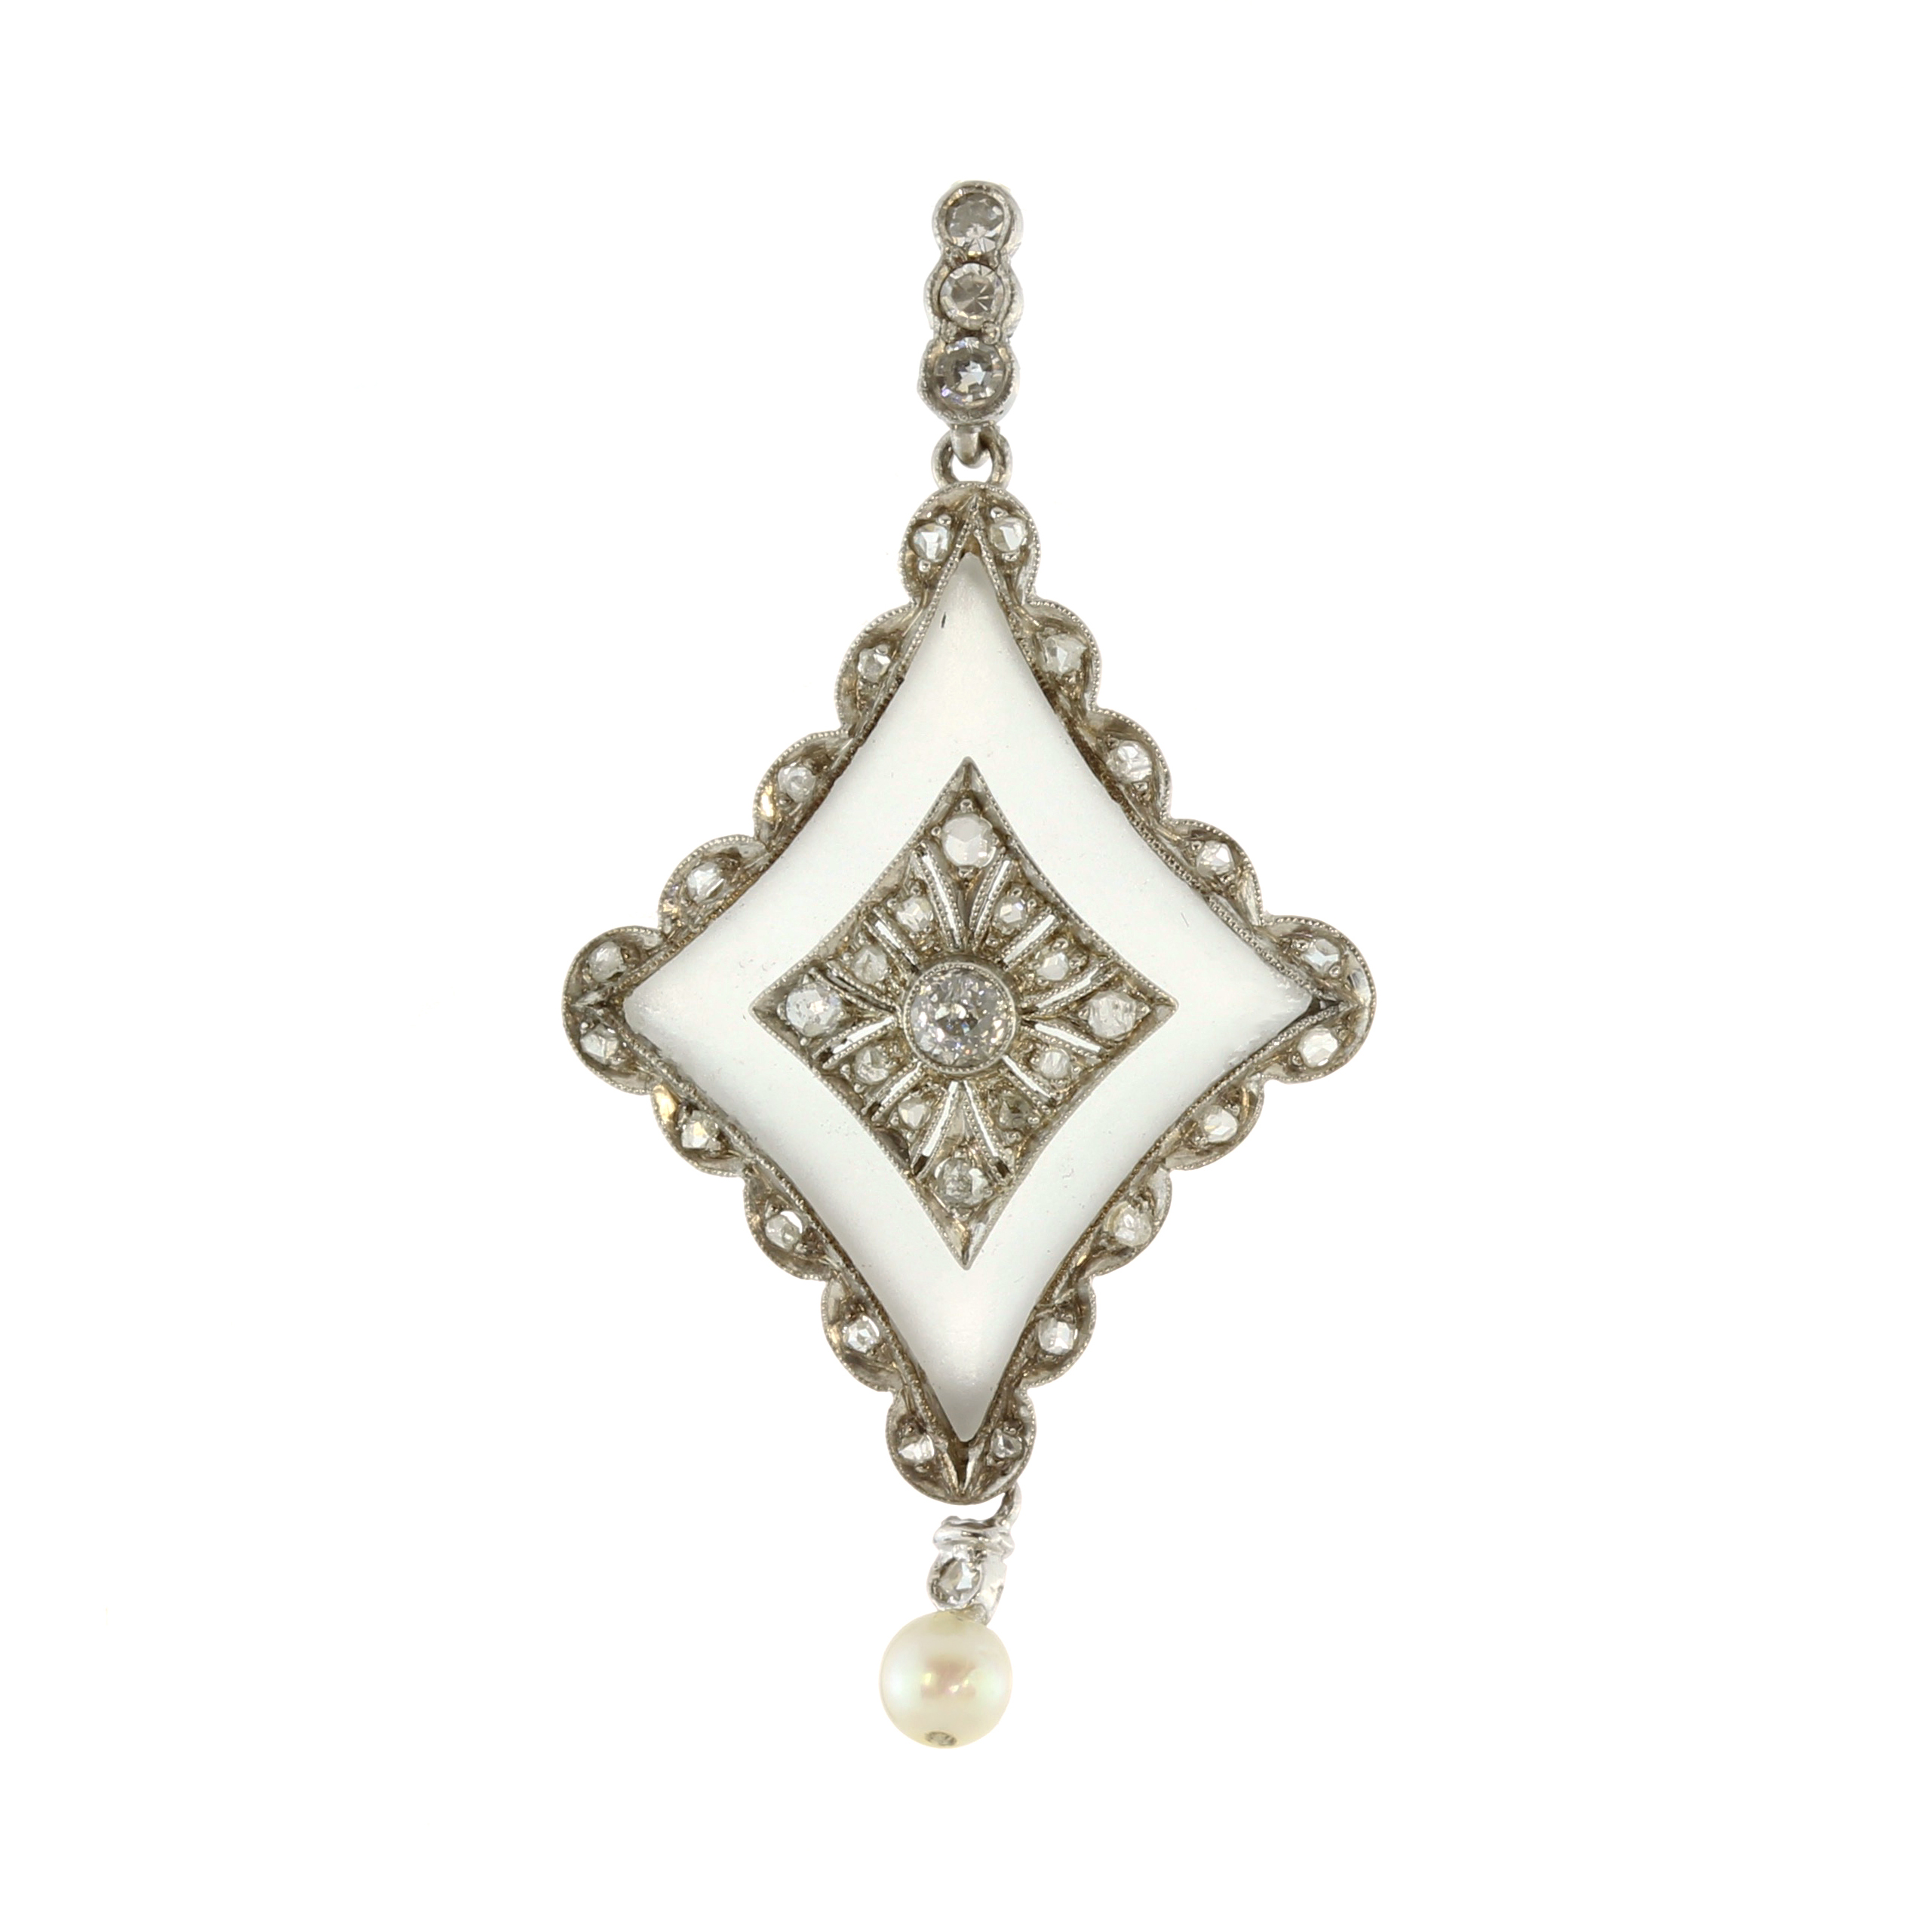 Los 4 - A vintage rock crystal, diamond and pearl pendant in white gold or platinum, the central diamond